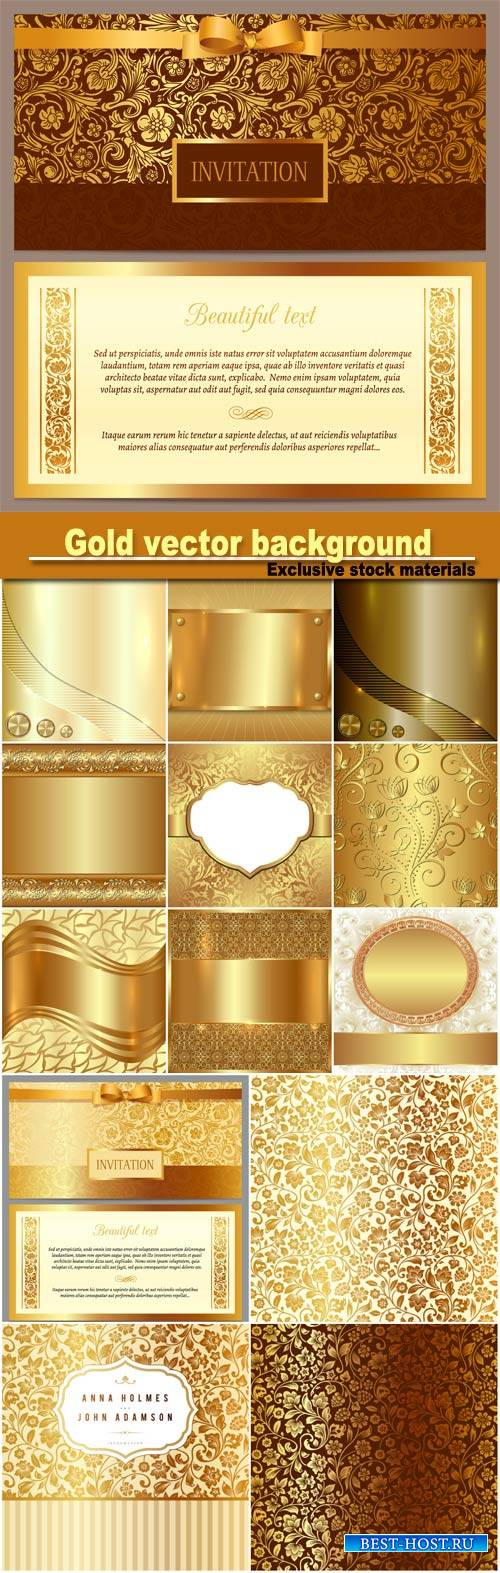 Gold vector background, wedding invitation